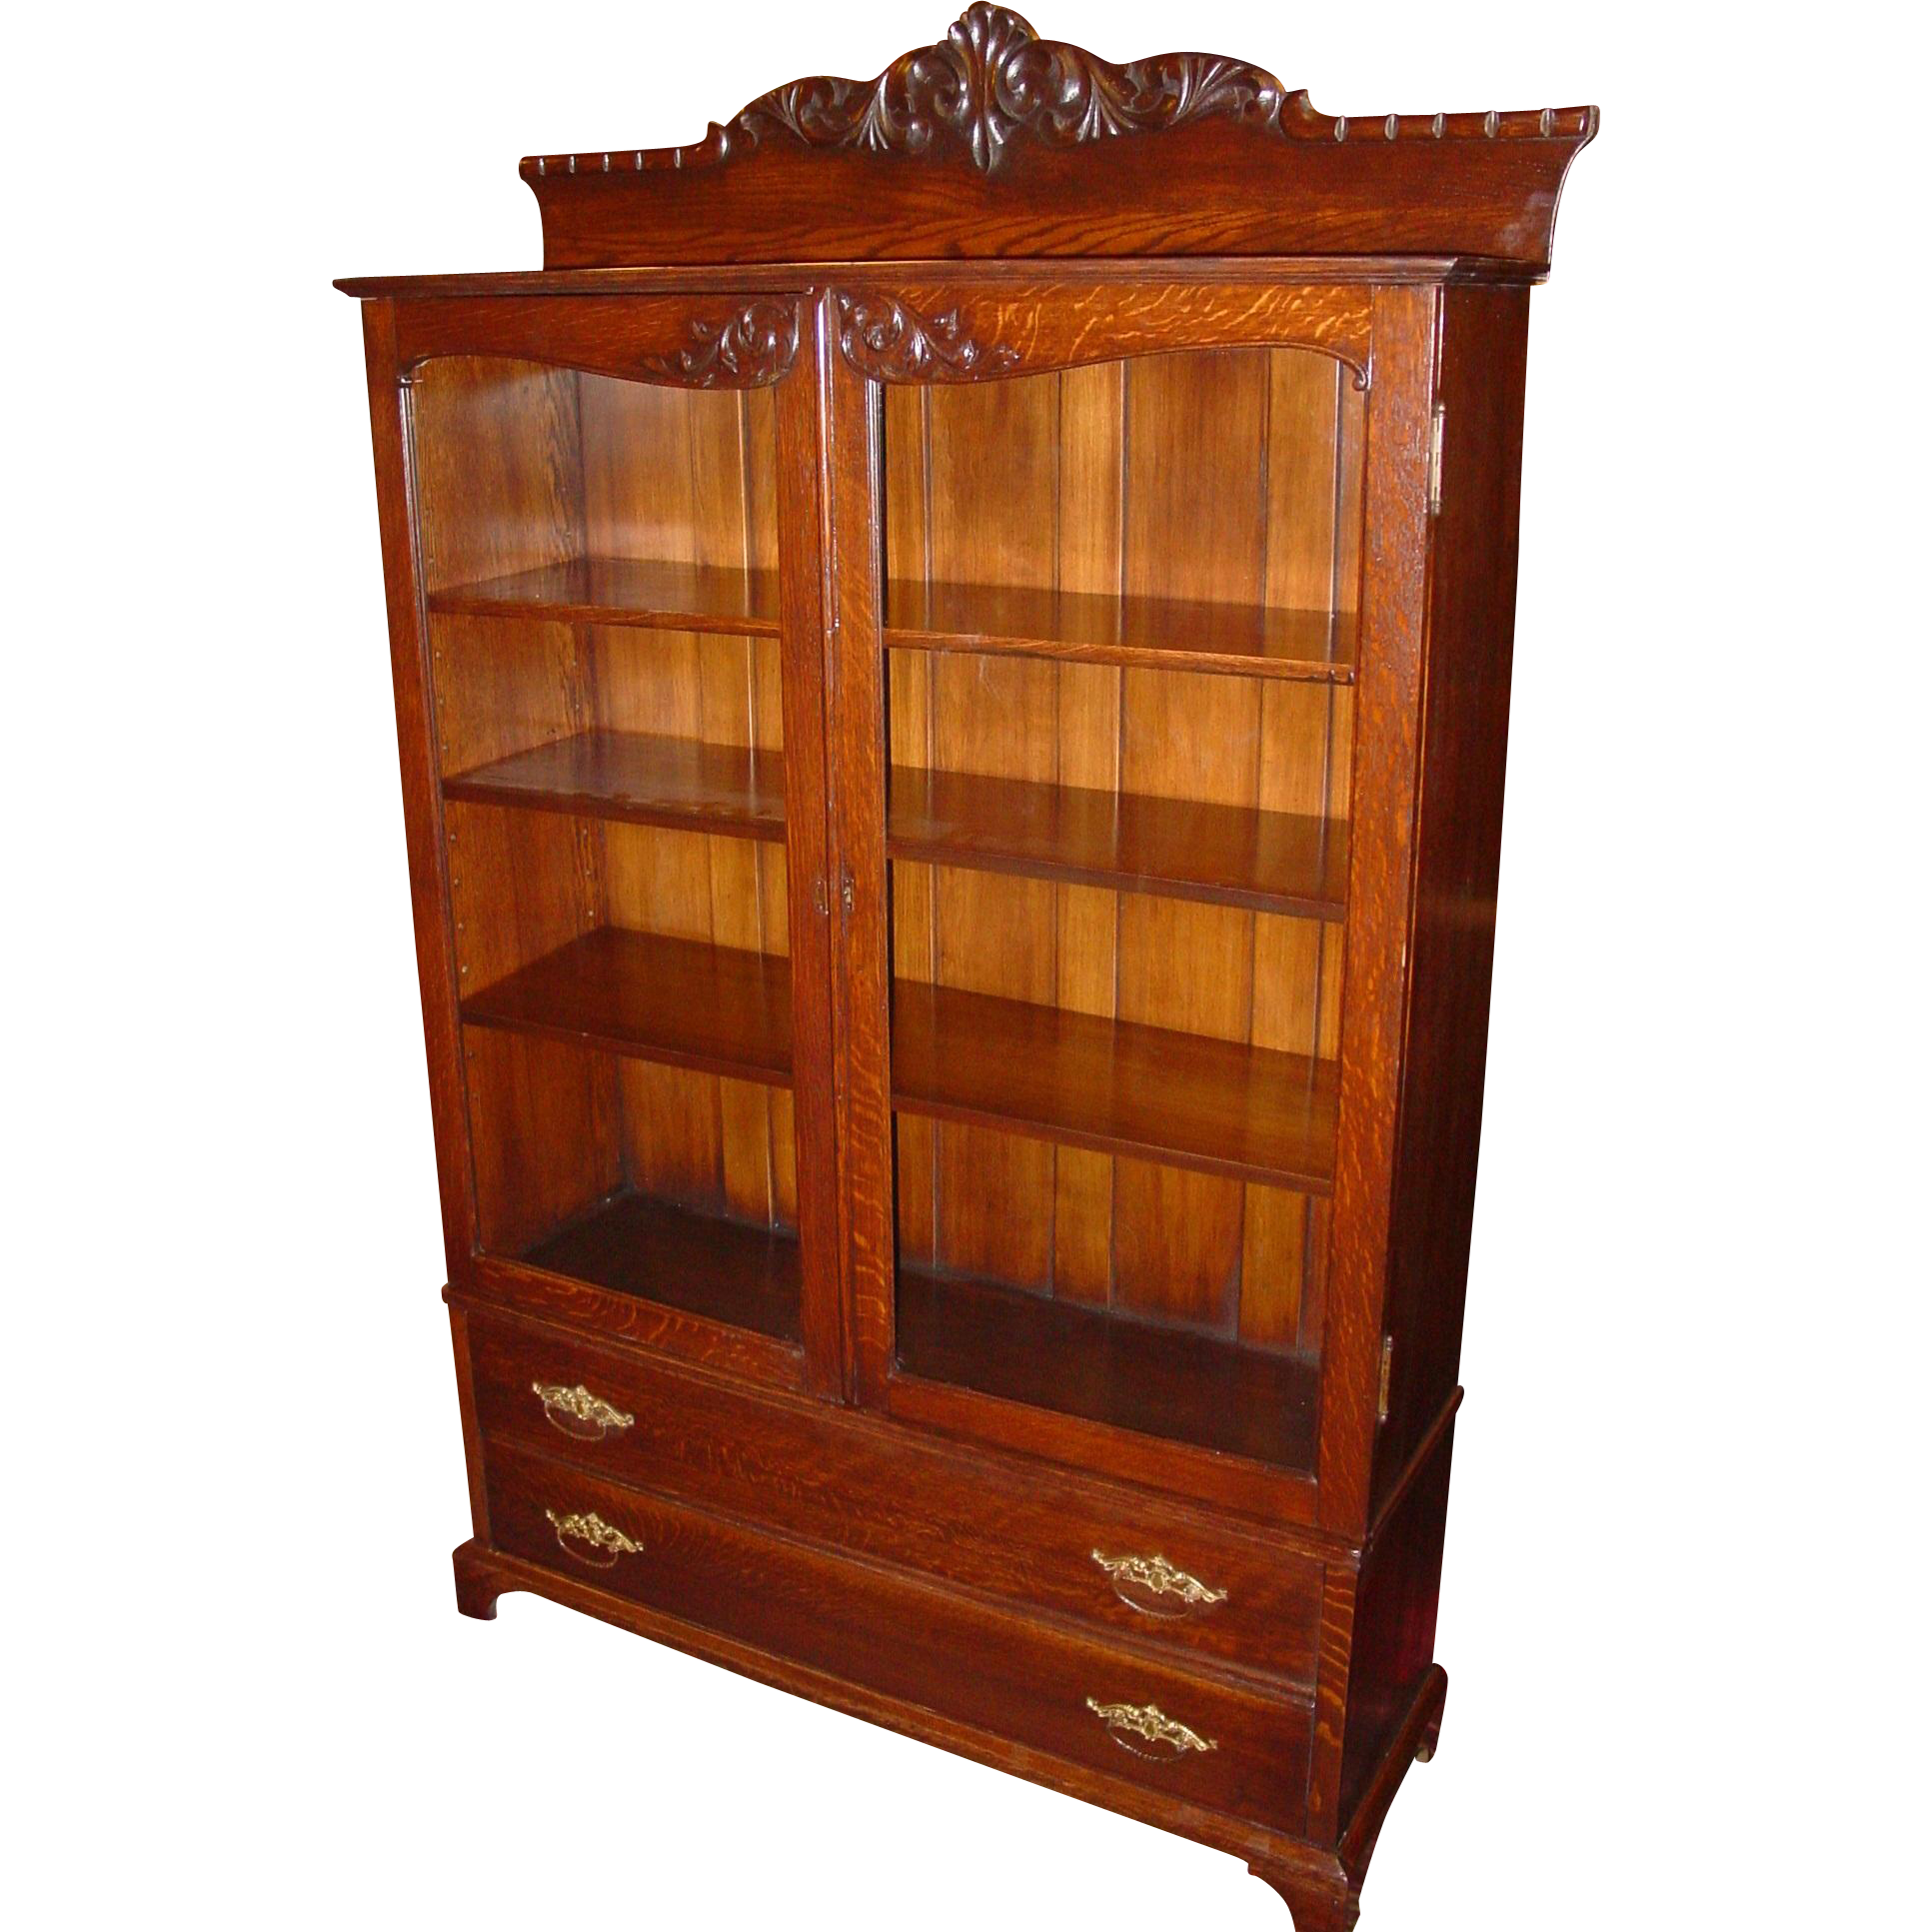 2 door quartered quarter sawn oak Bookcase w carving & 2 drawers